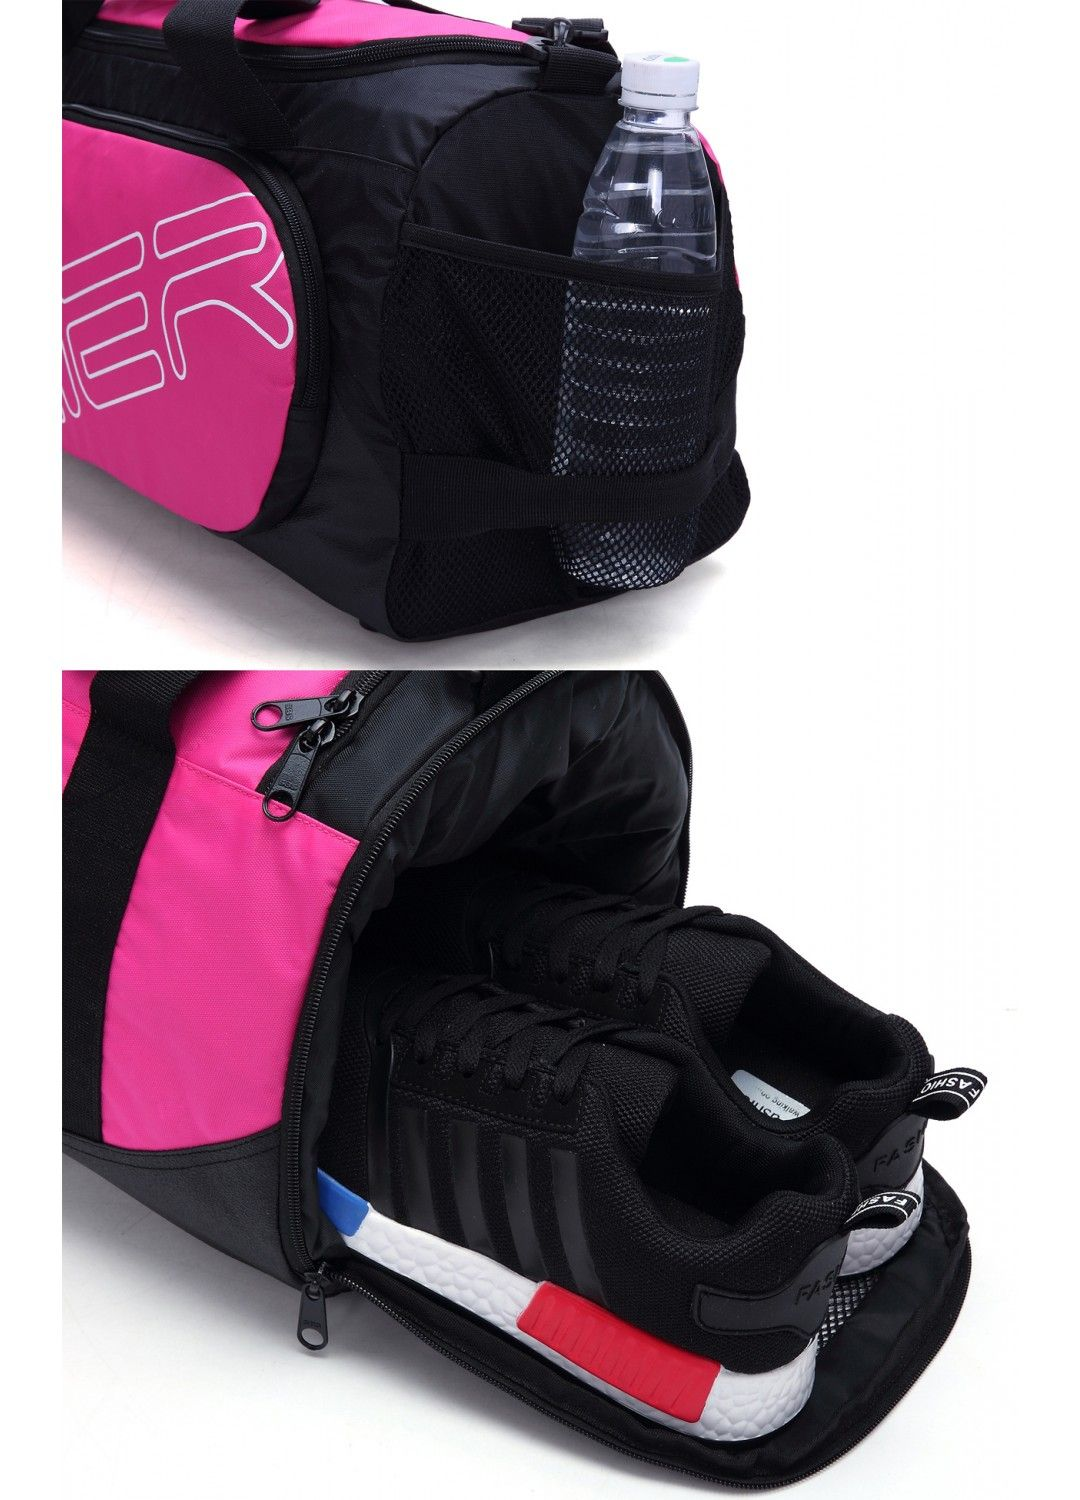 a6fbd4e4850d MIER Small Gym Sports Bag with Shoes Compartment for Men and Women ...